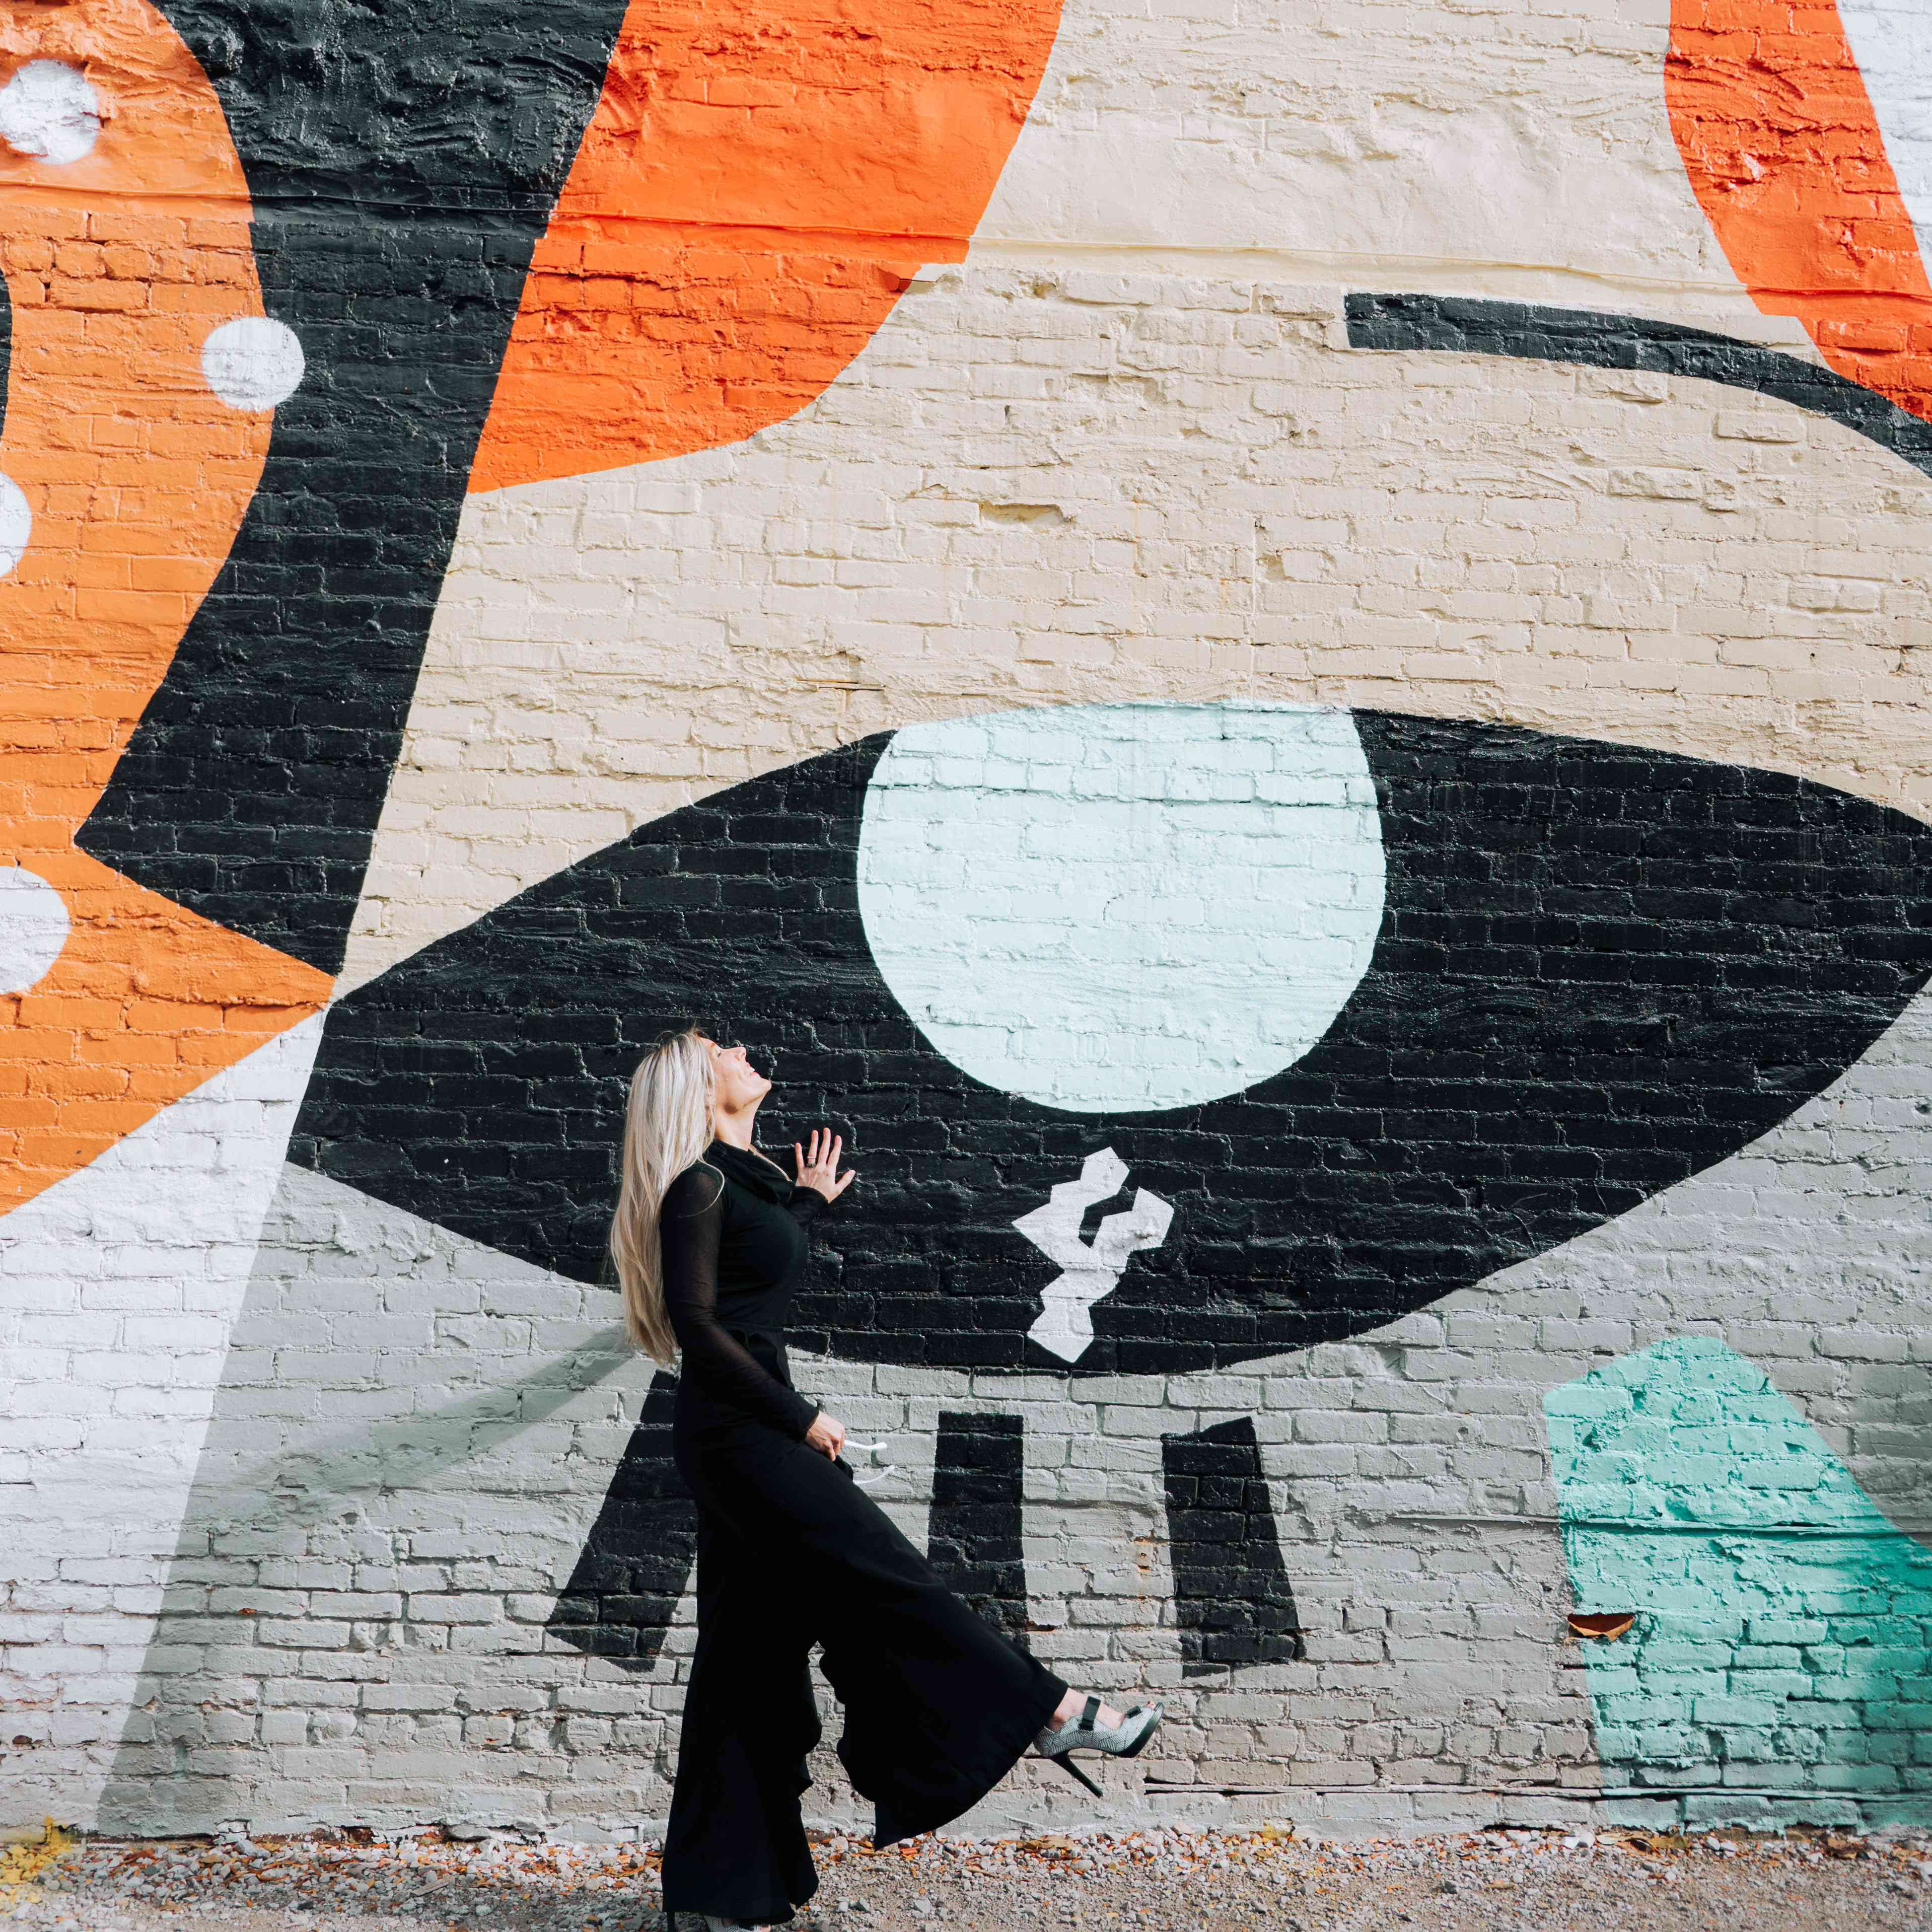 Elin Walters poses in front of a colorful outdoor mural